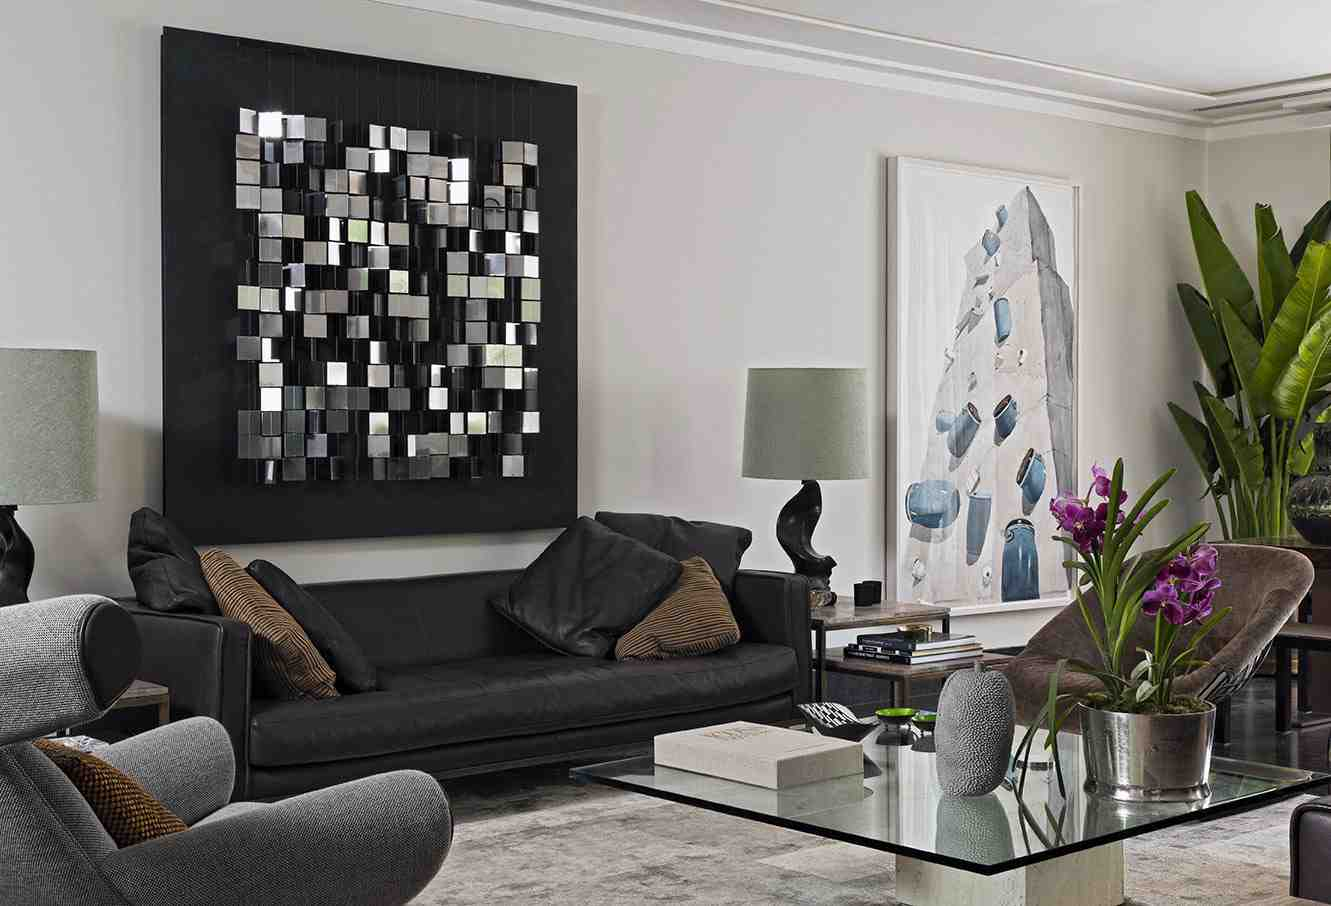 Living Room Wall Decor: 5 Options  Decor IdeasDecor Ideas